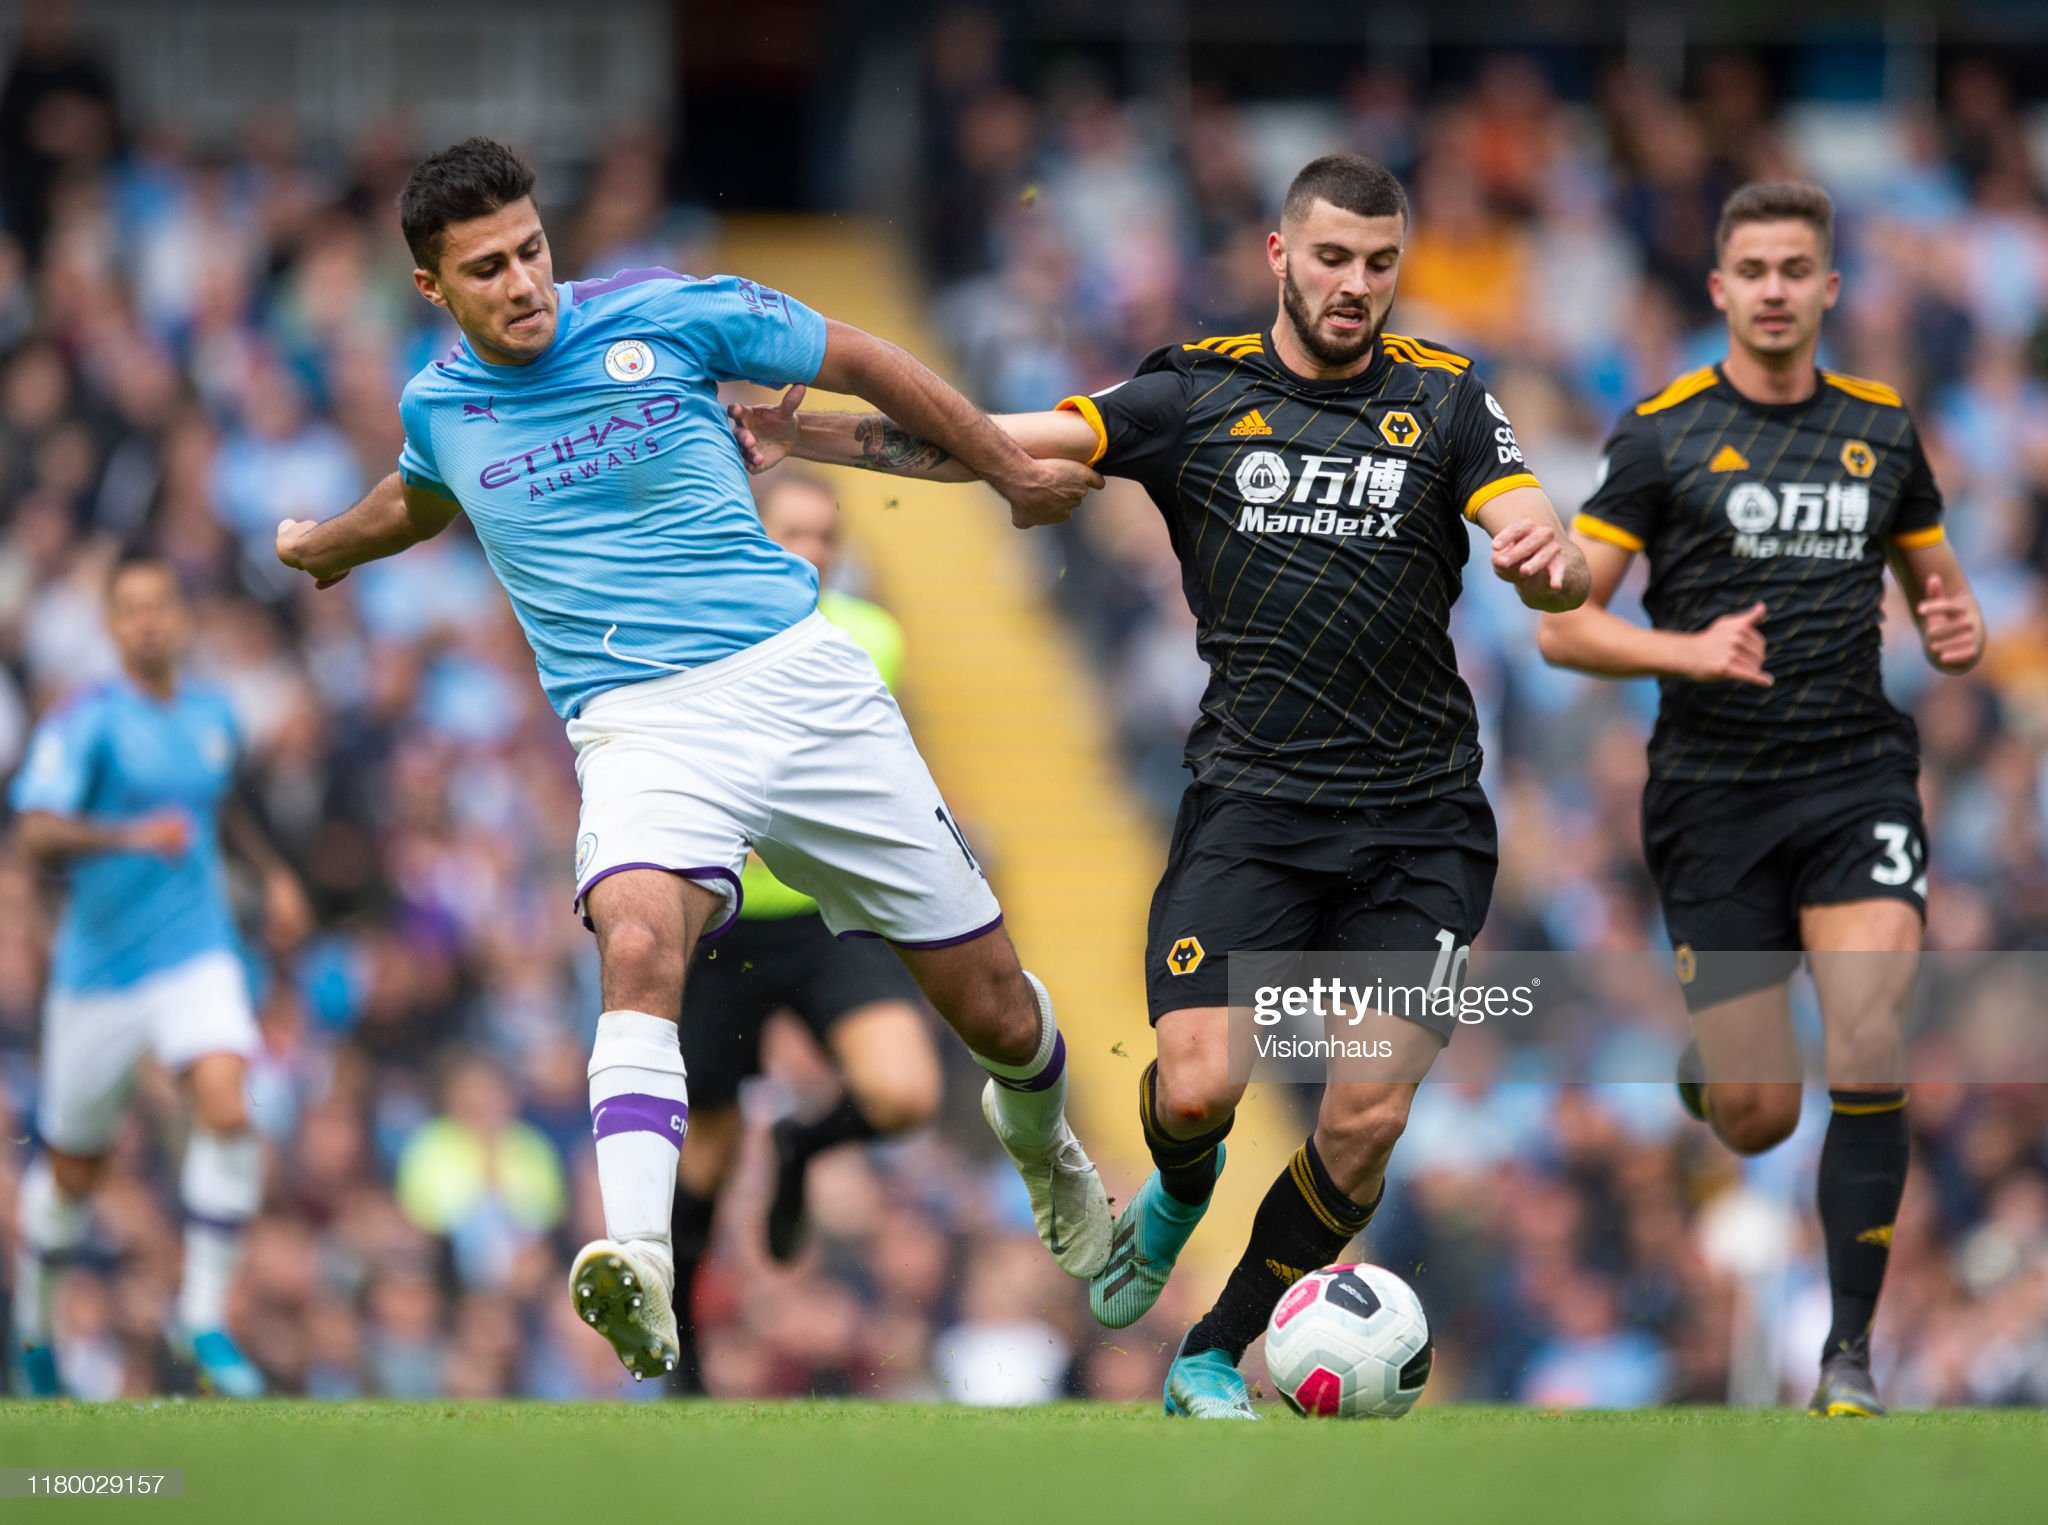 Wolves v Manchester City preview, prediction and odds